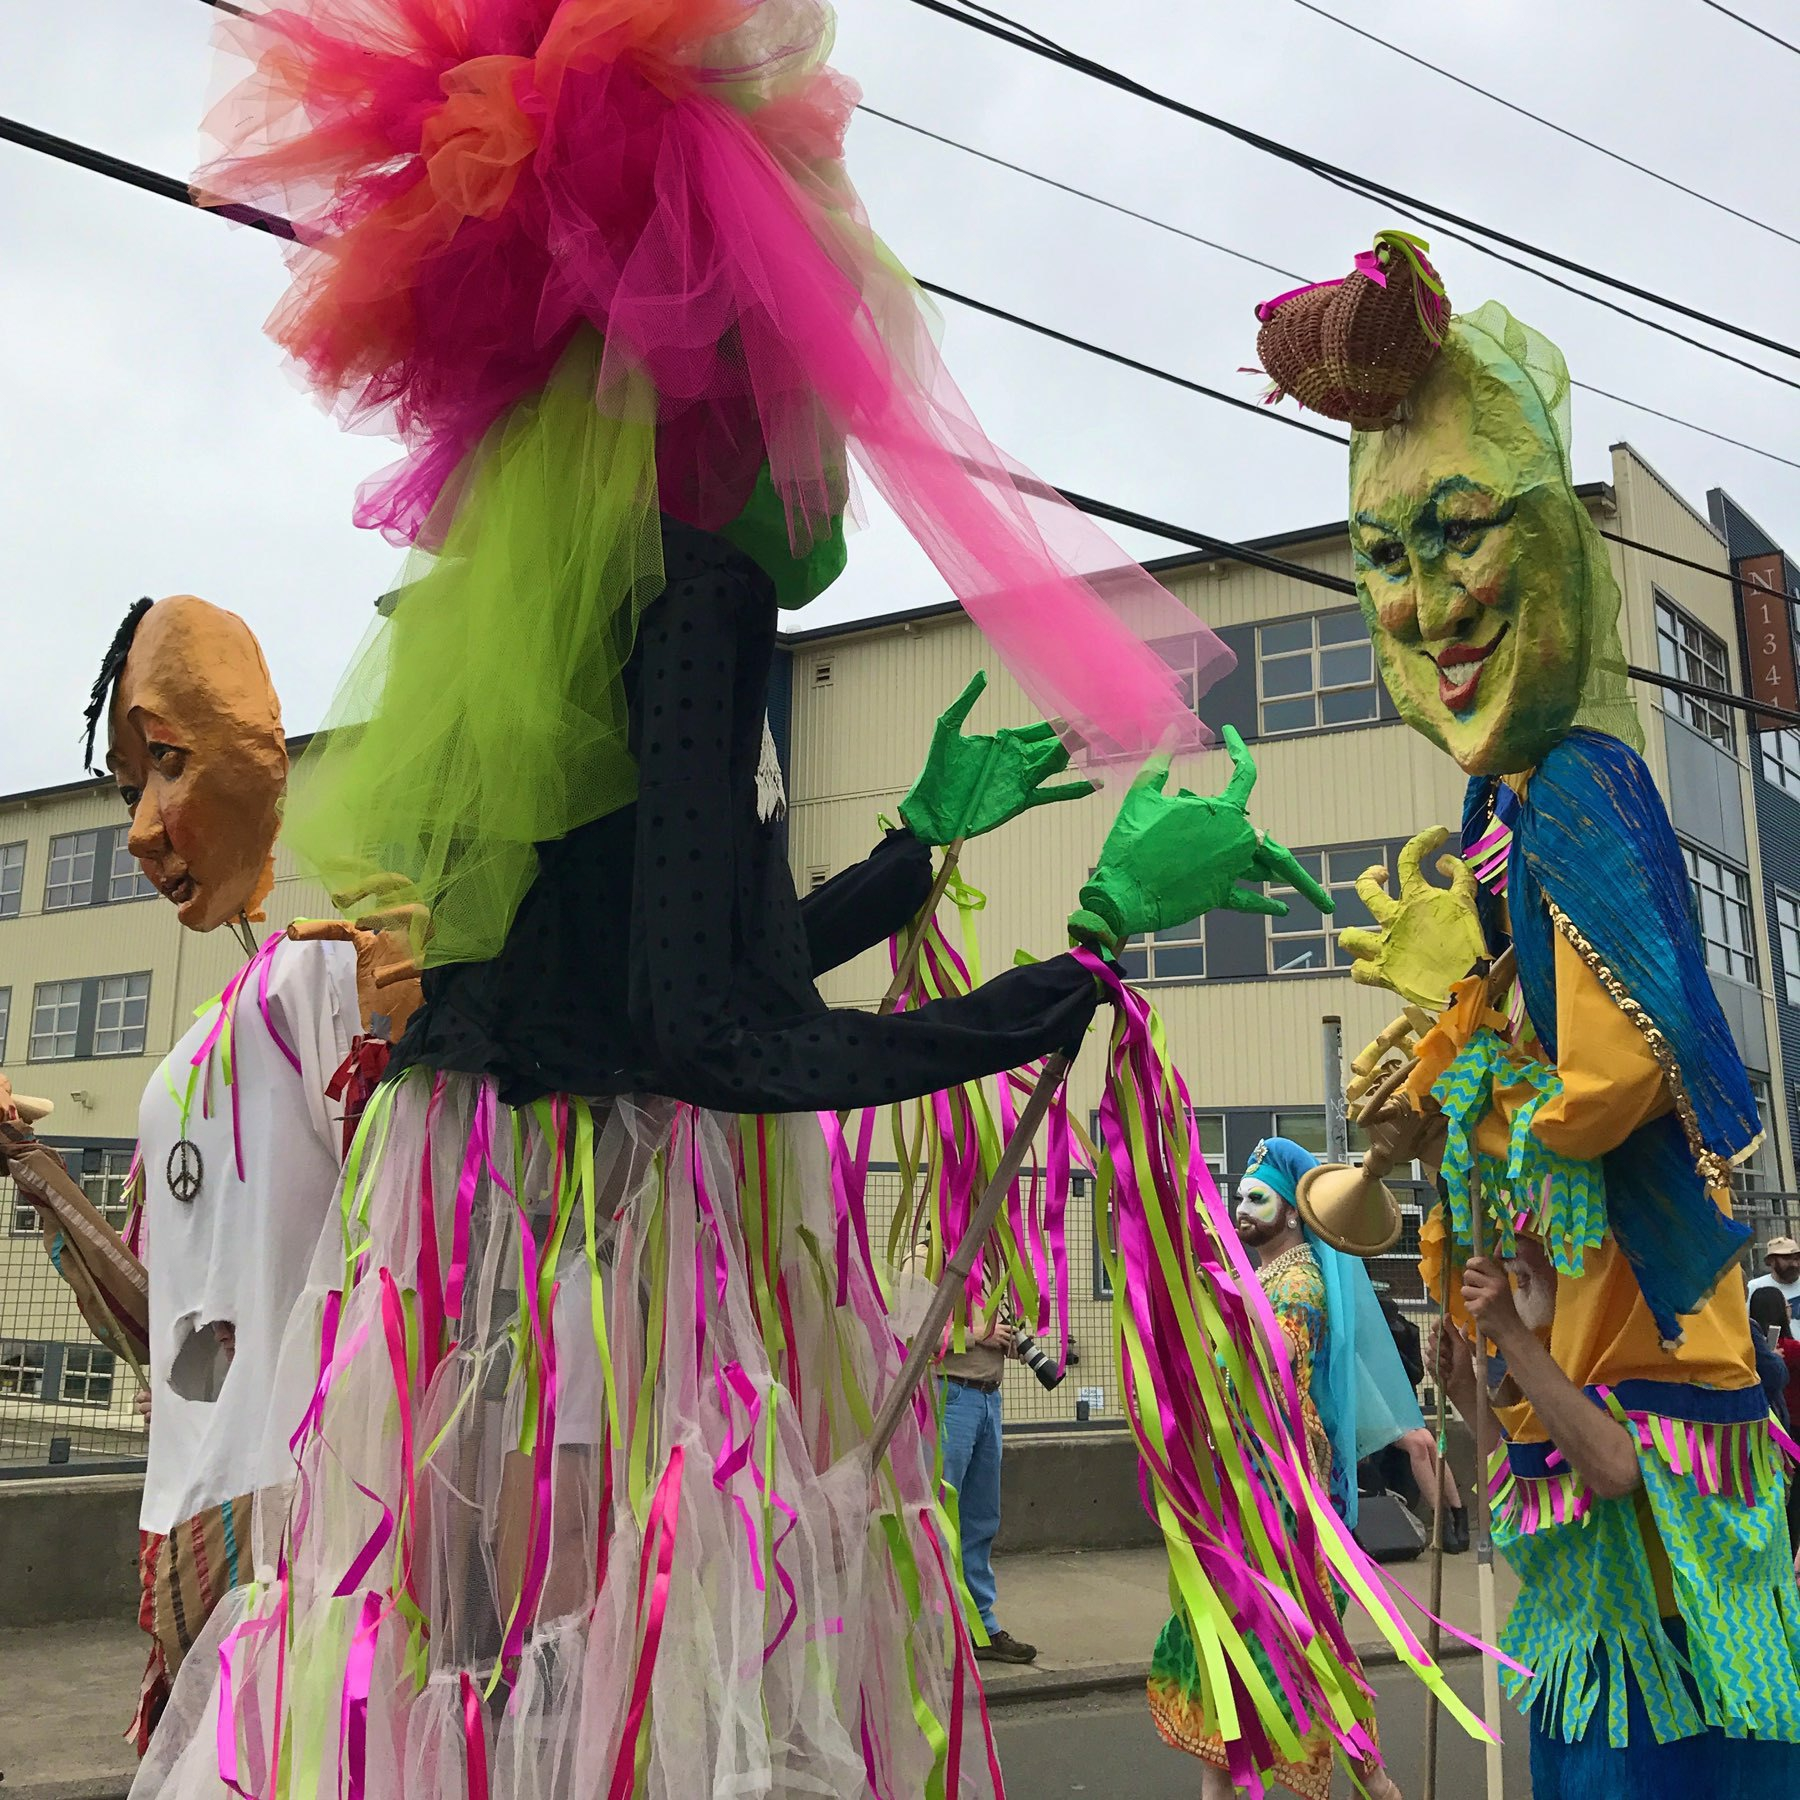 parade marchers in costume wearing large masks and festooned with ribbons